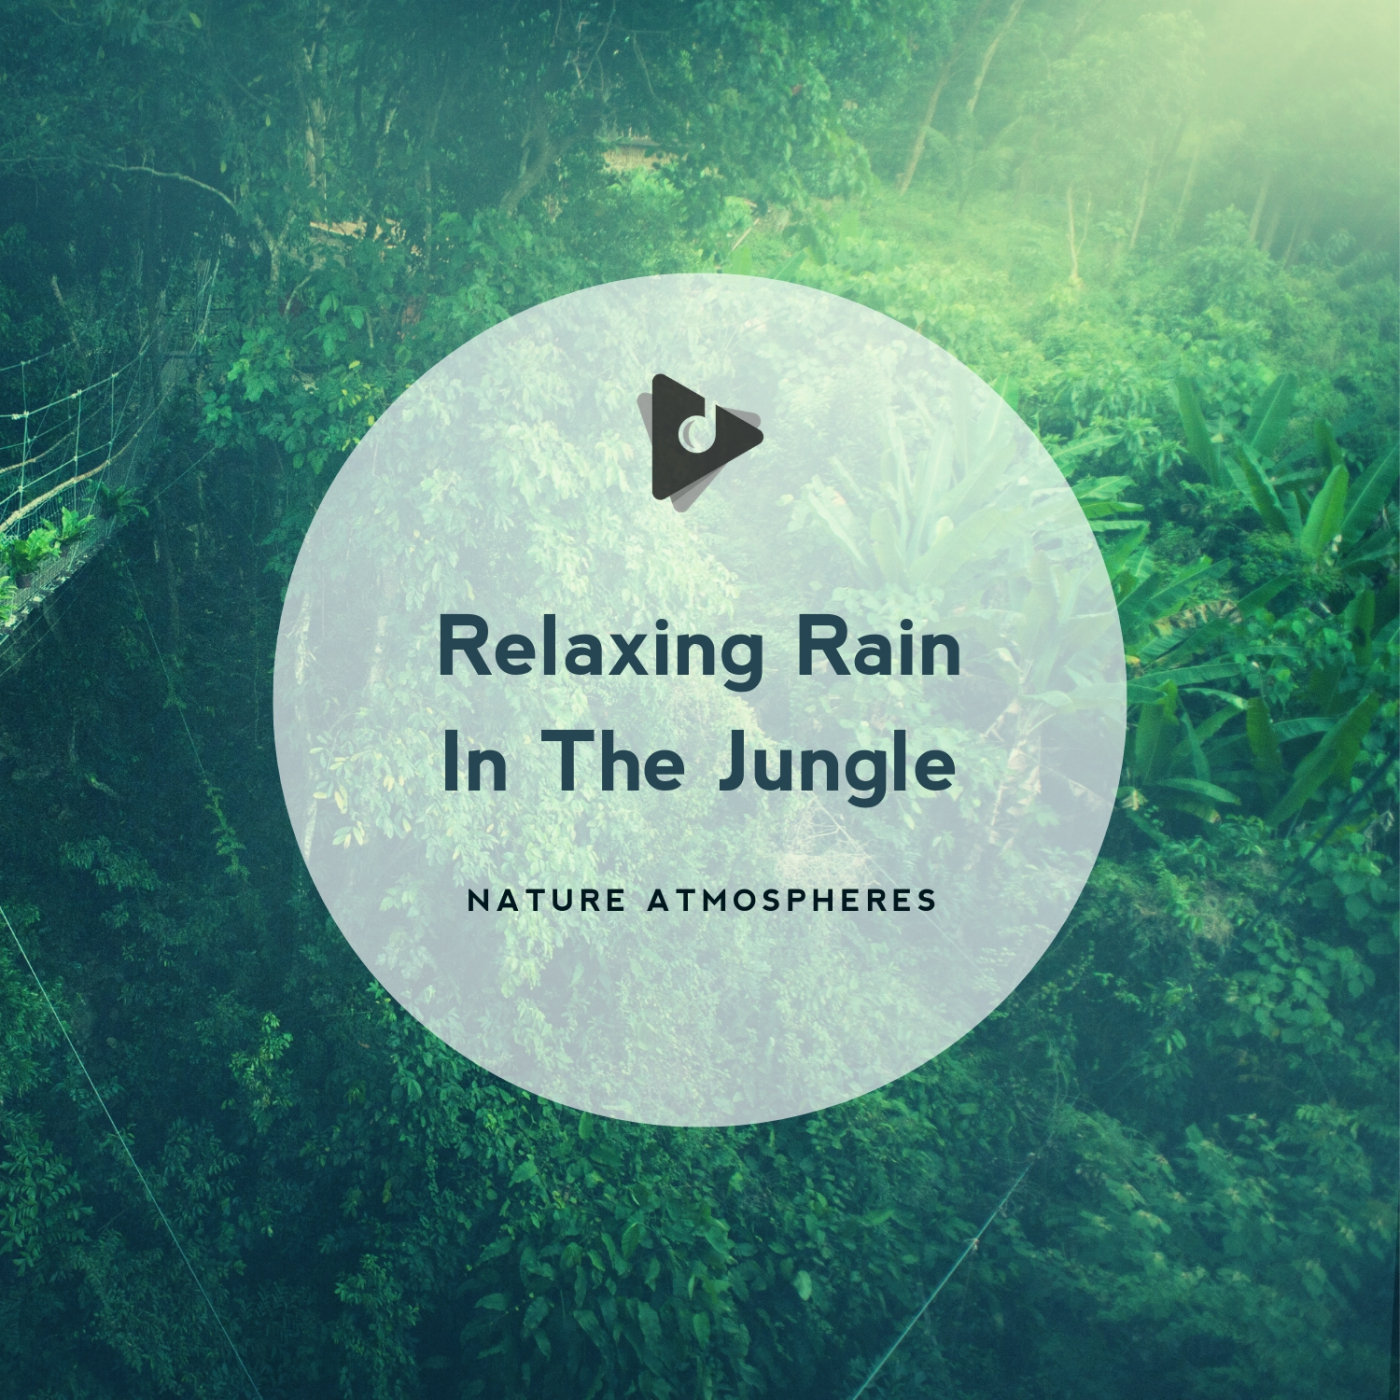 Relaxing Rain In The Jungle